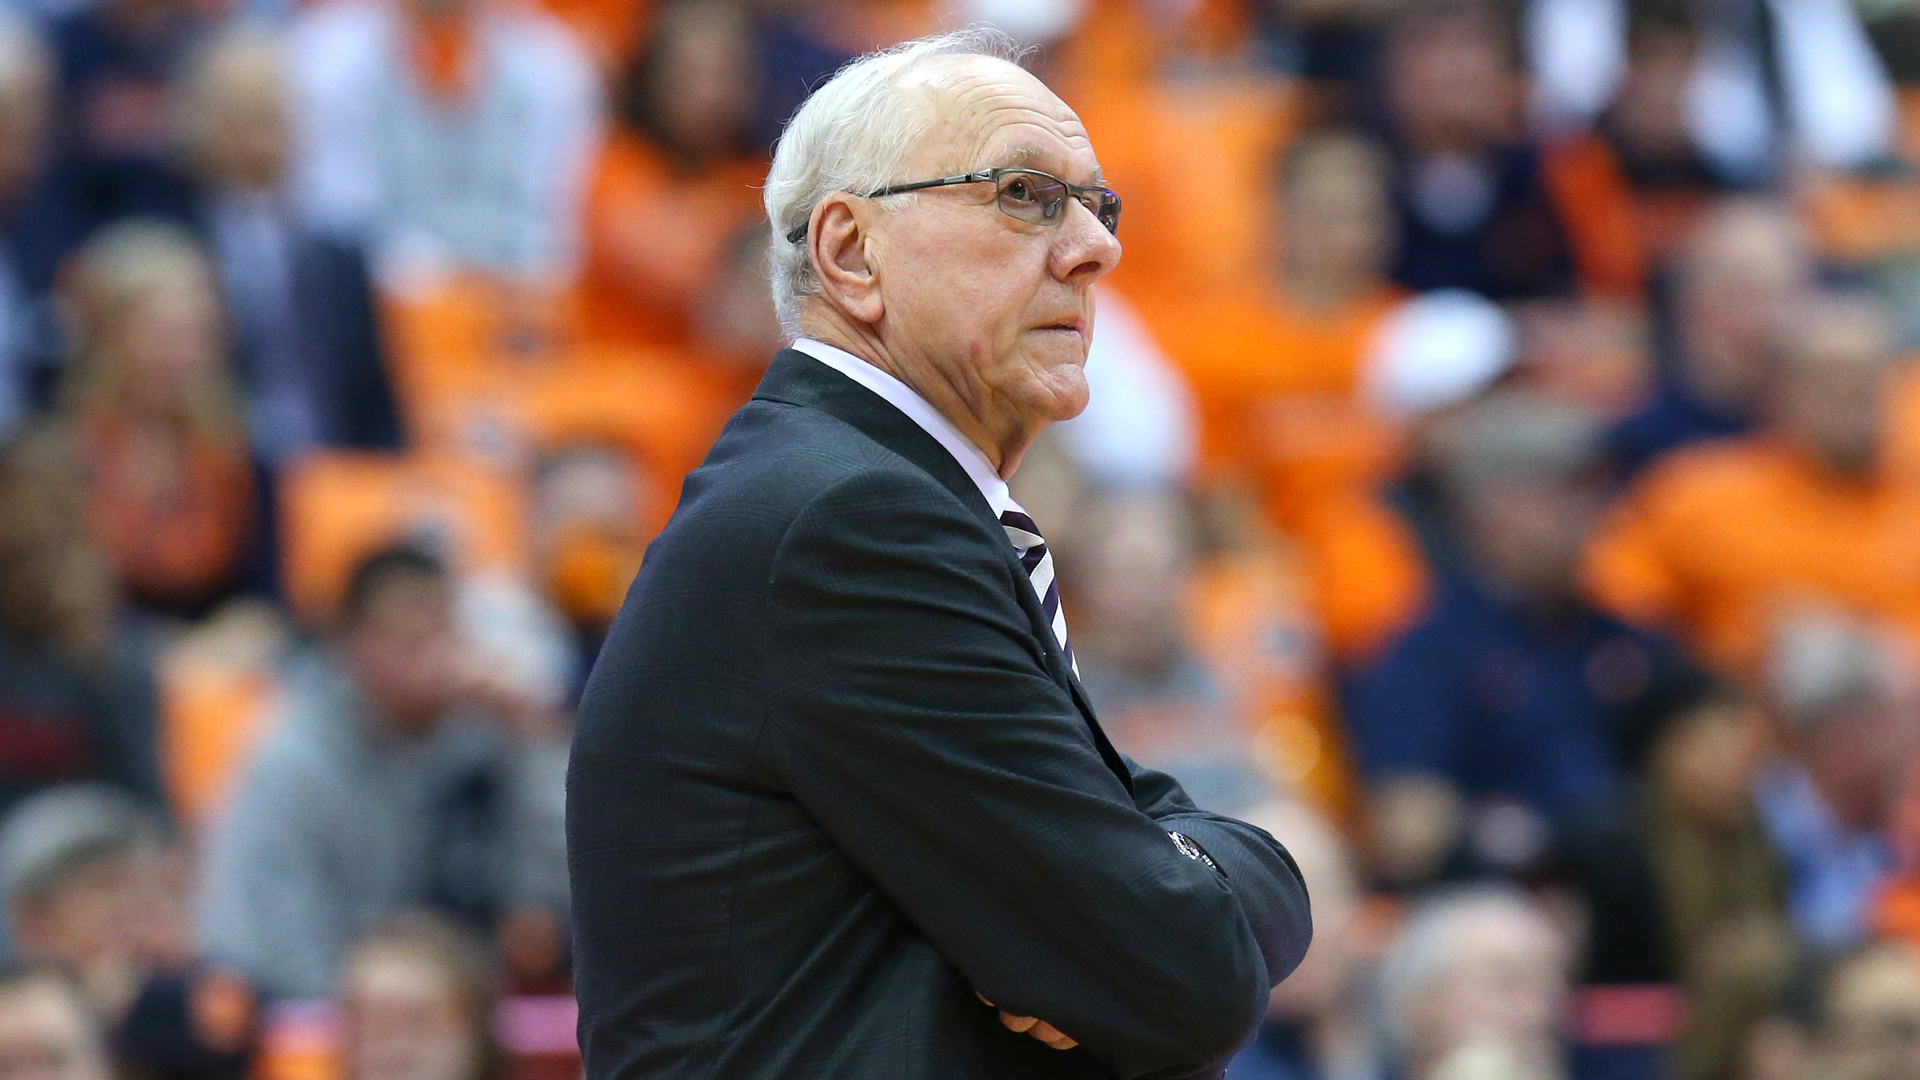 Head coach Jim Boeheim of the Syracuse Orange reacts to a play against the Northeastern Huskies during the second half at the Carrier Dome on December 4, 2018 in Syracuse, New York. (Credit: Rich Barnes/Getty Images)